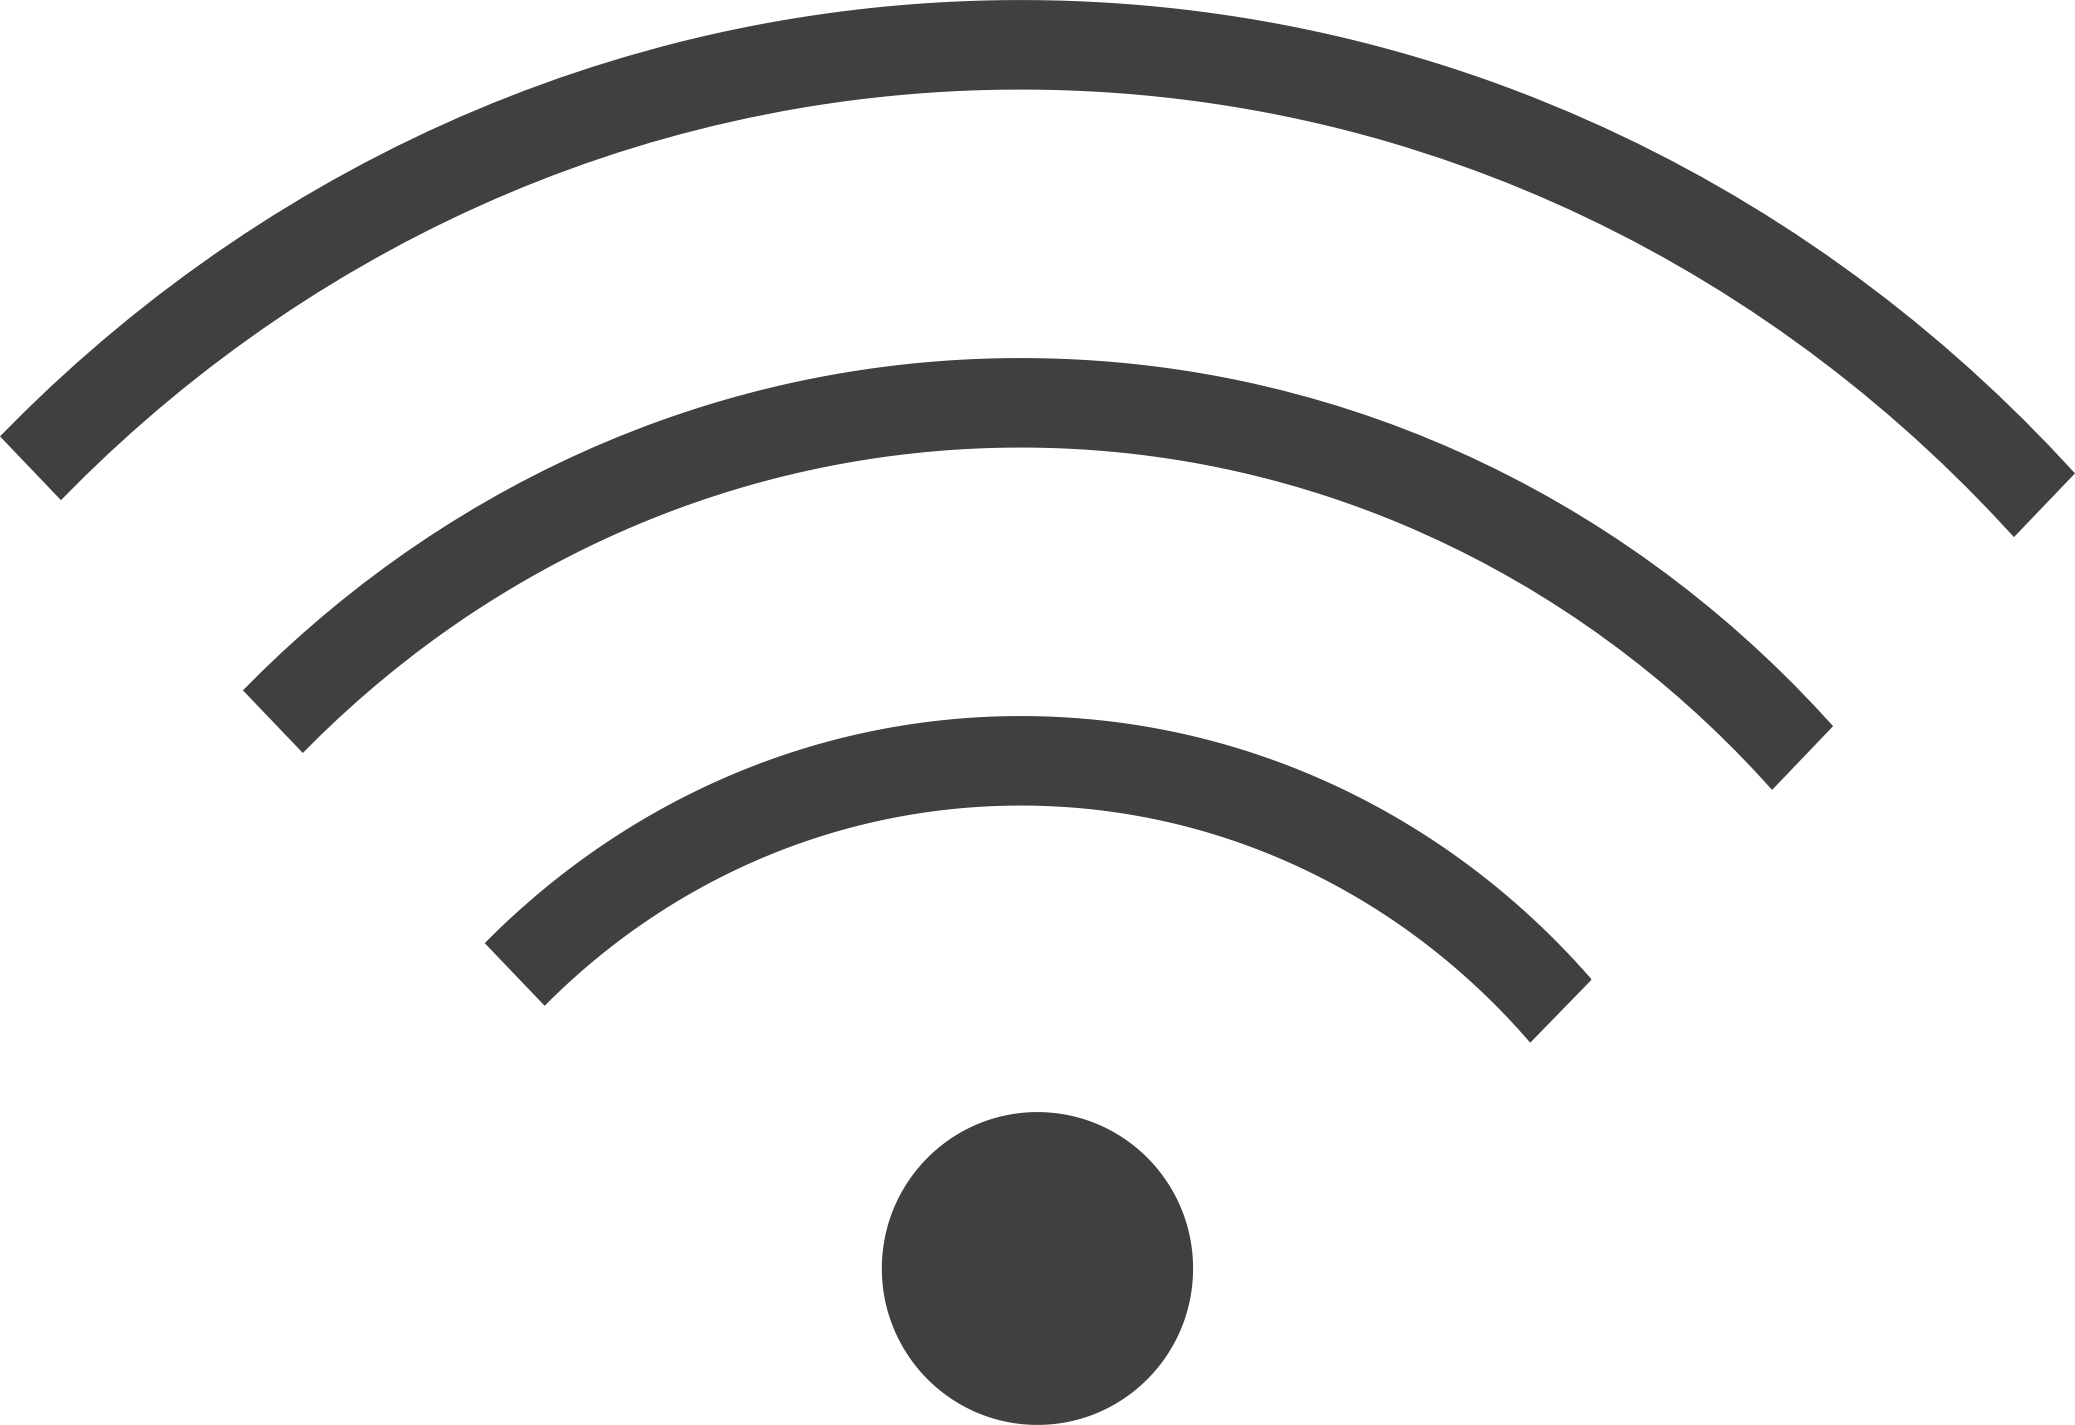 Wifi waves png. Icon black image purepng